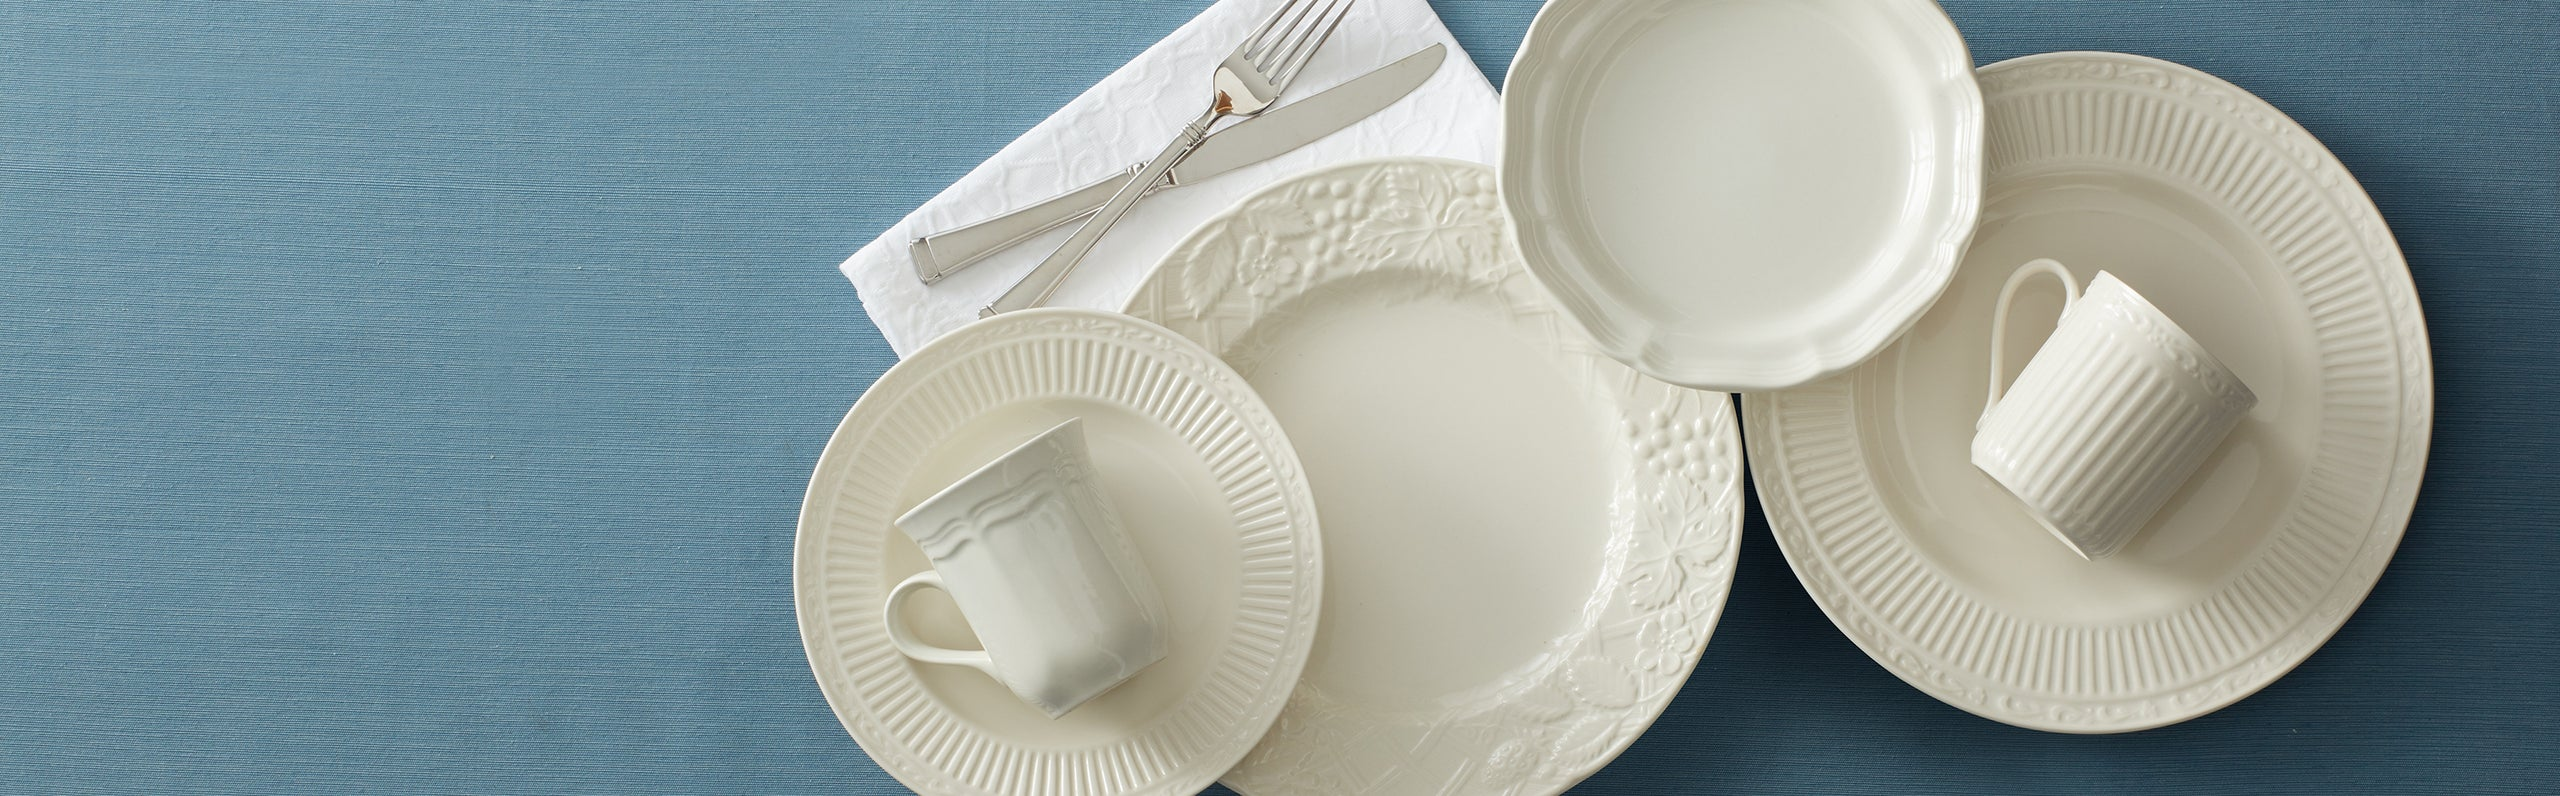 Mikasa Patterns and Collections, featuring our Countryside dinnerware, in shades of soft white with fluting, embossed fruit, and crimped edging.